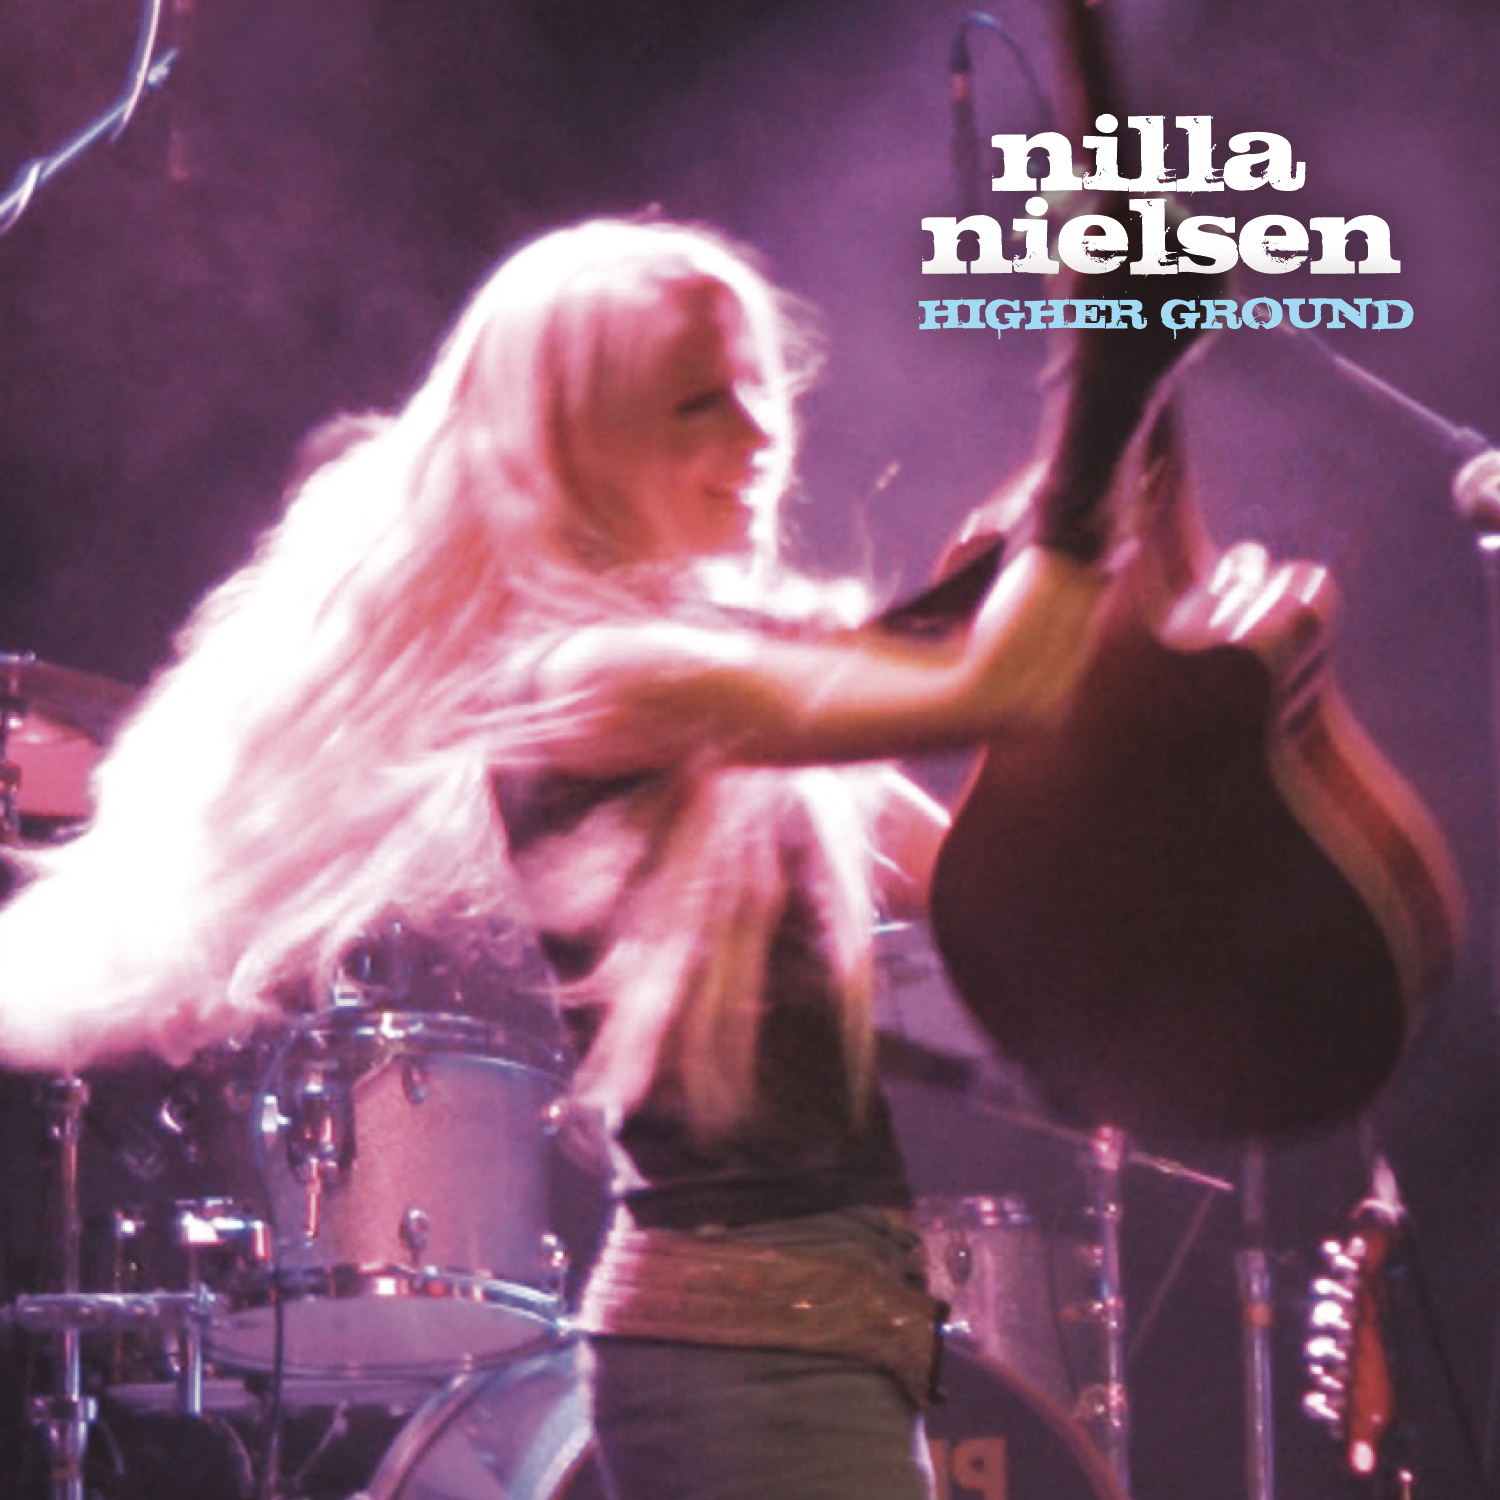 Nilla Nielsen - Higher Ground